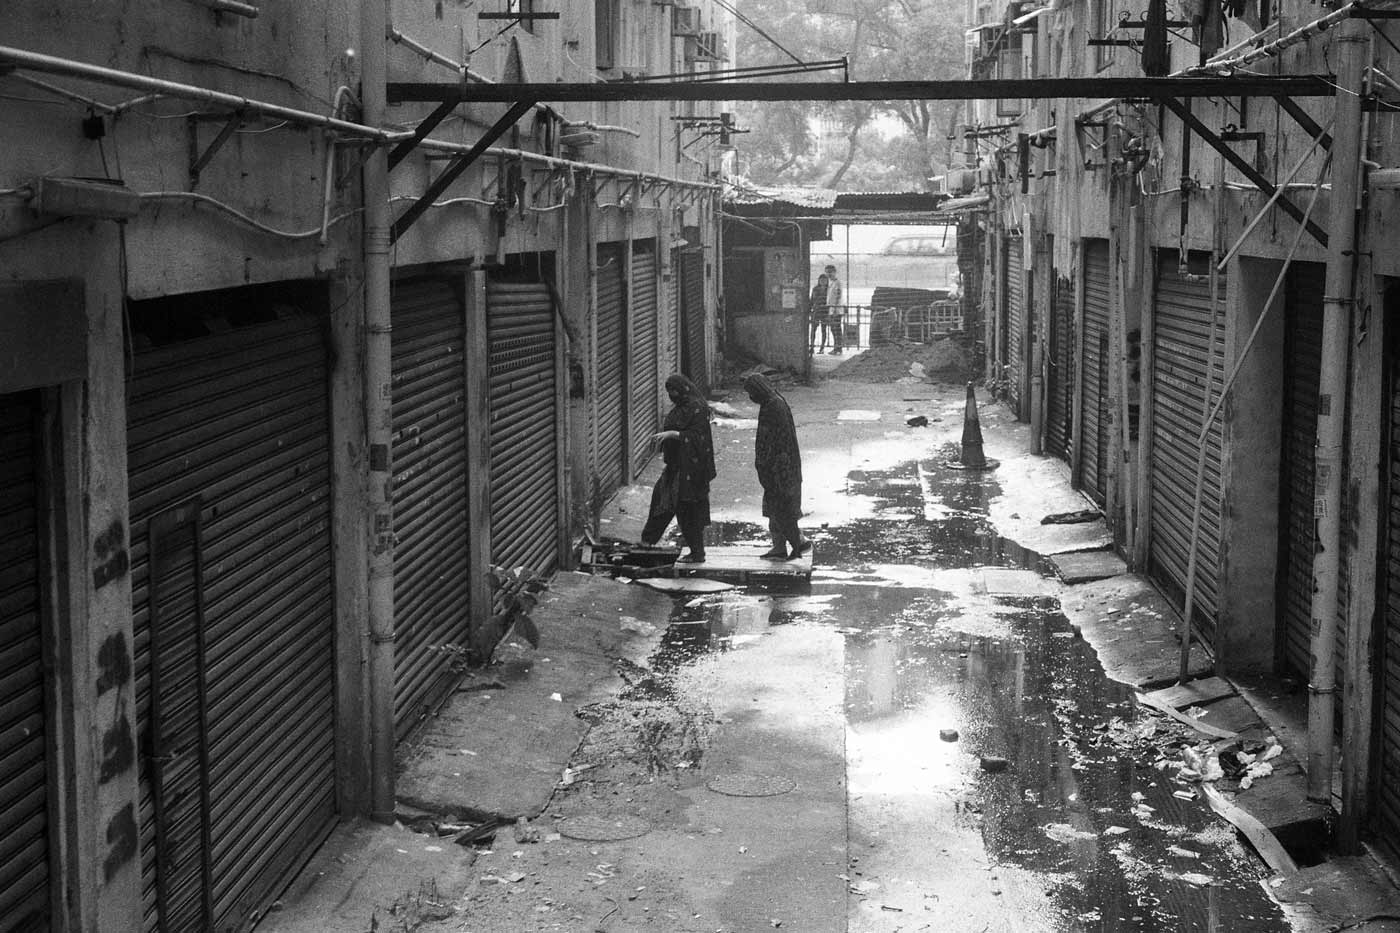 Leica-Summicron-50mm-50-f2-Rigid-Type-2-II-lens-review-kentmere-400-slum-in-demolished-kowloon-city-kai-tak-mansion